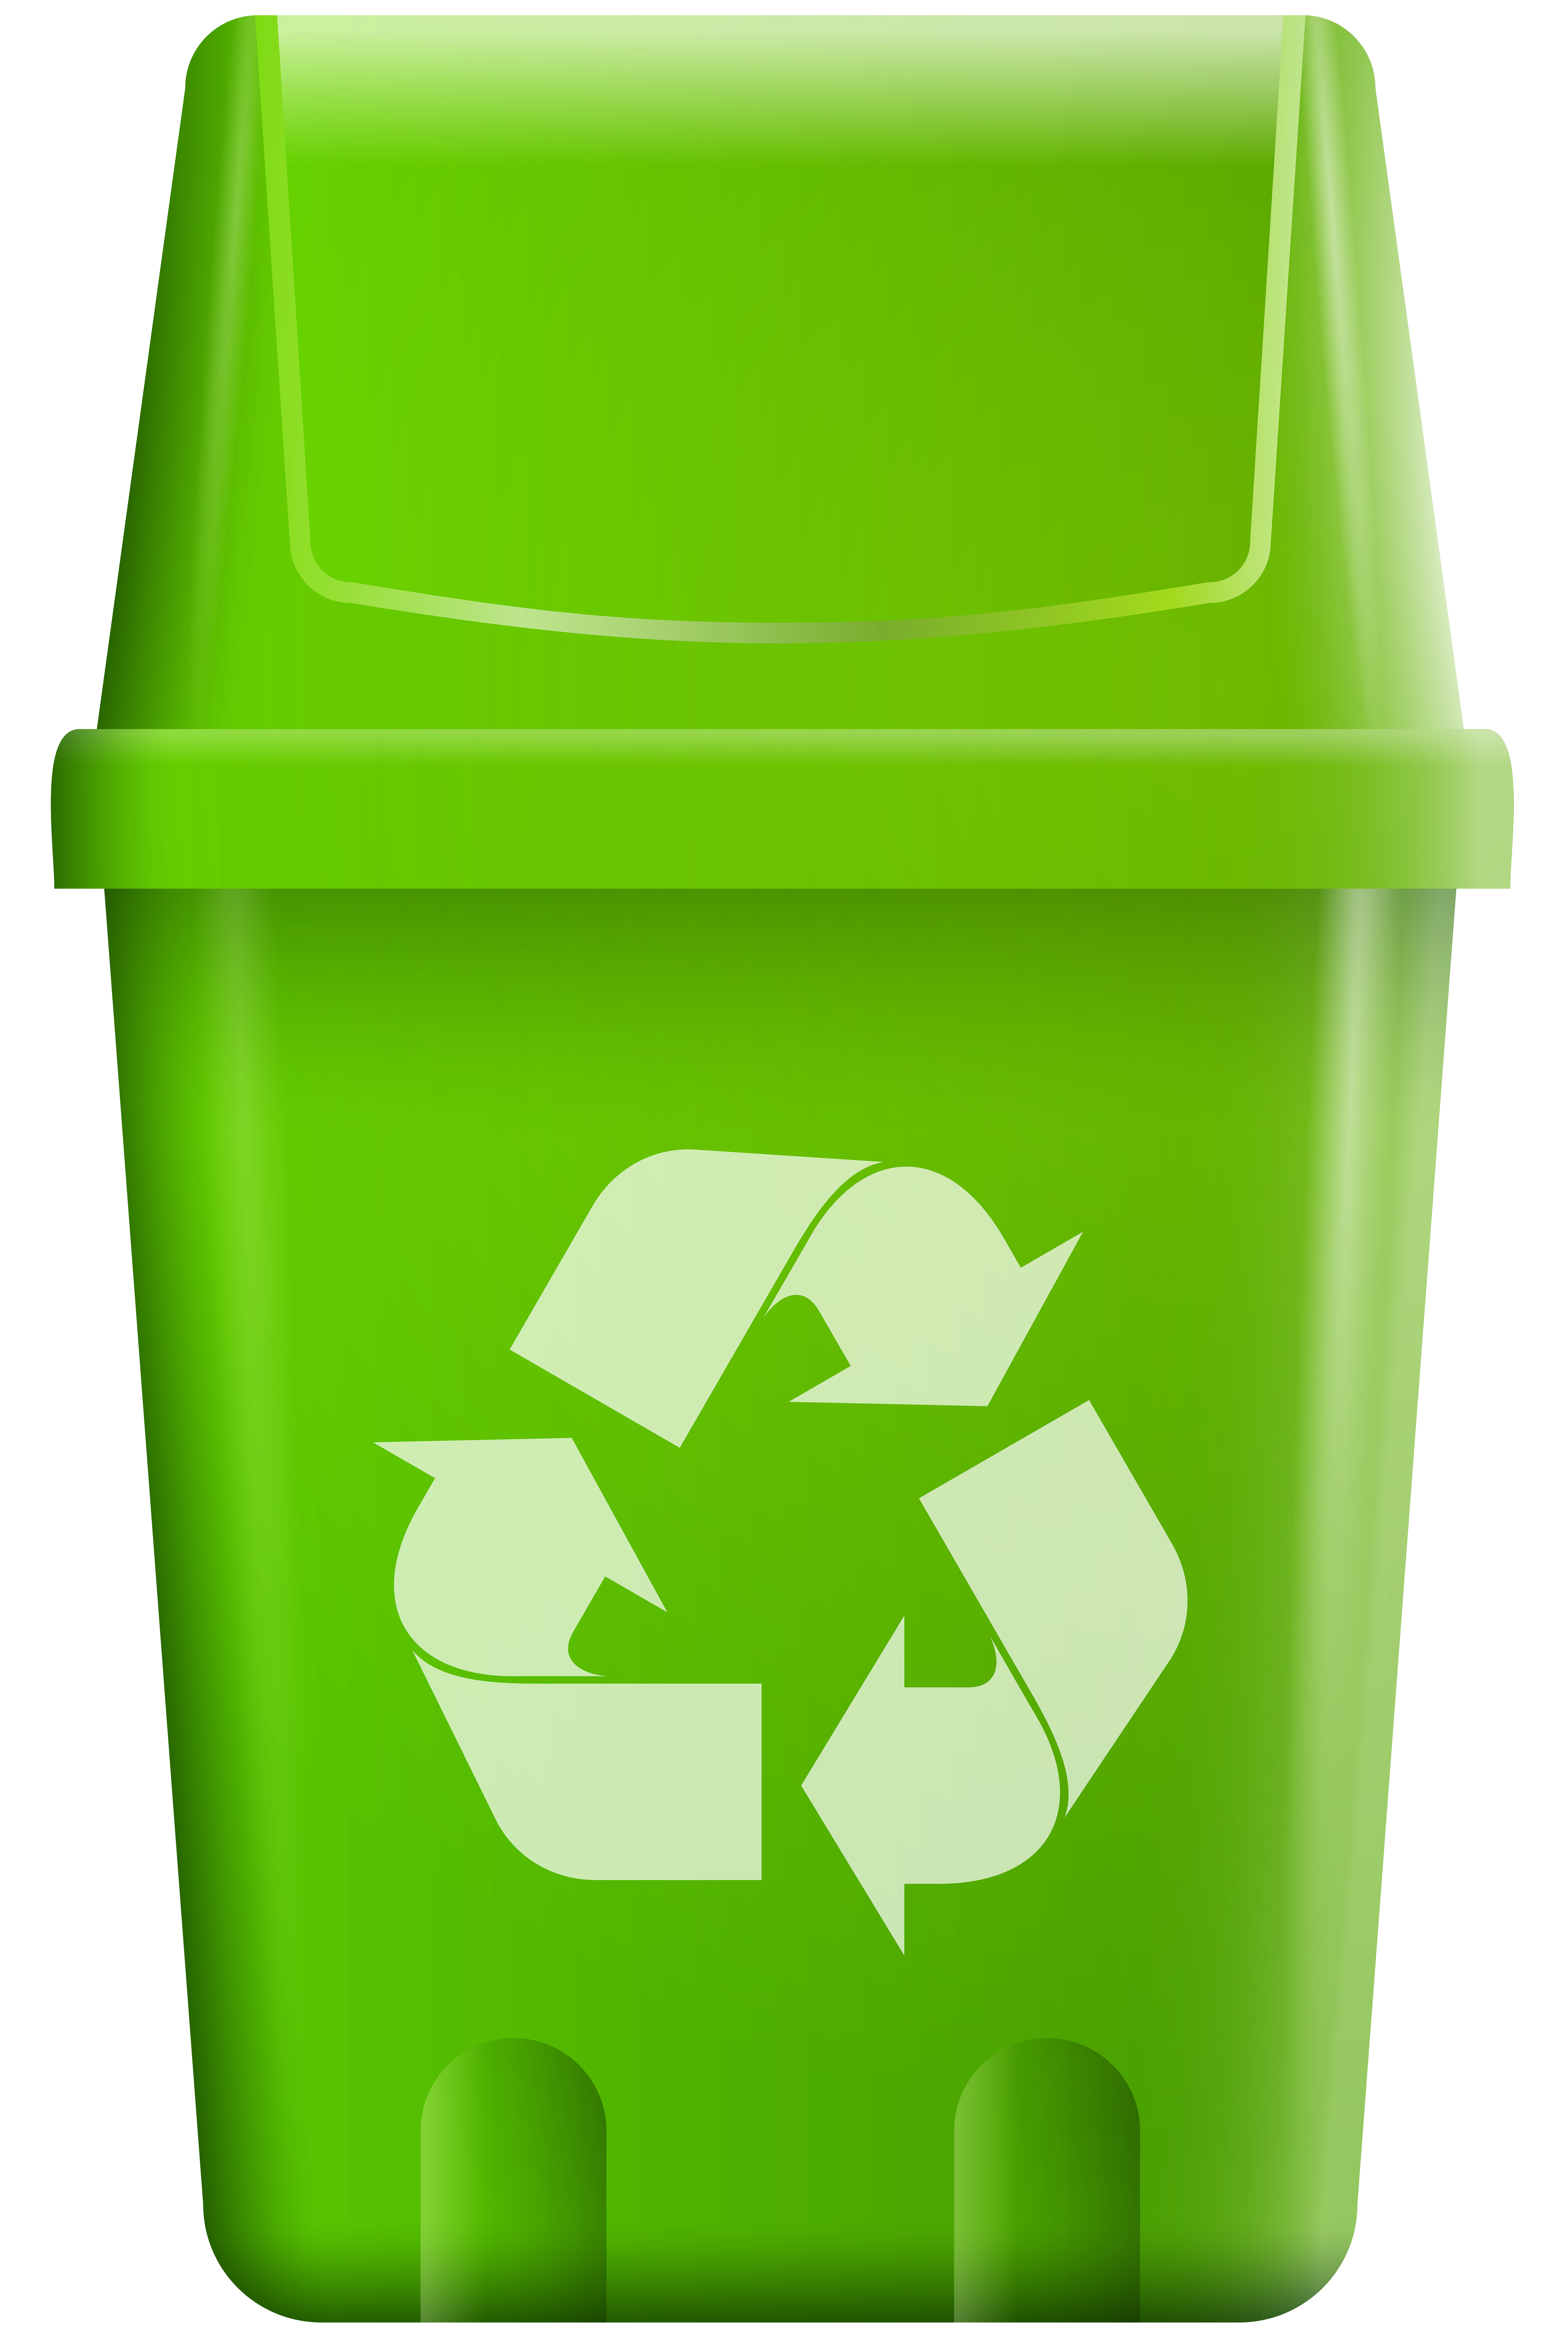 Recycle heart clipart jpg download Trash Bin with Recycle Symbol PNG Clip Art - Best WEB Clipart jpg download